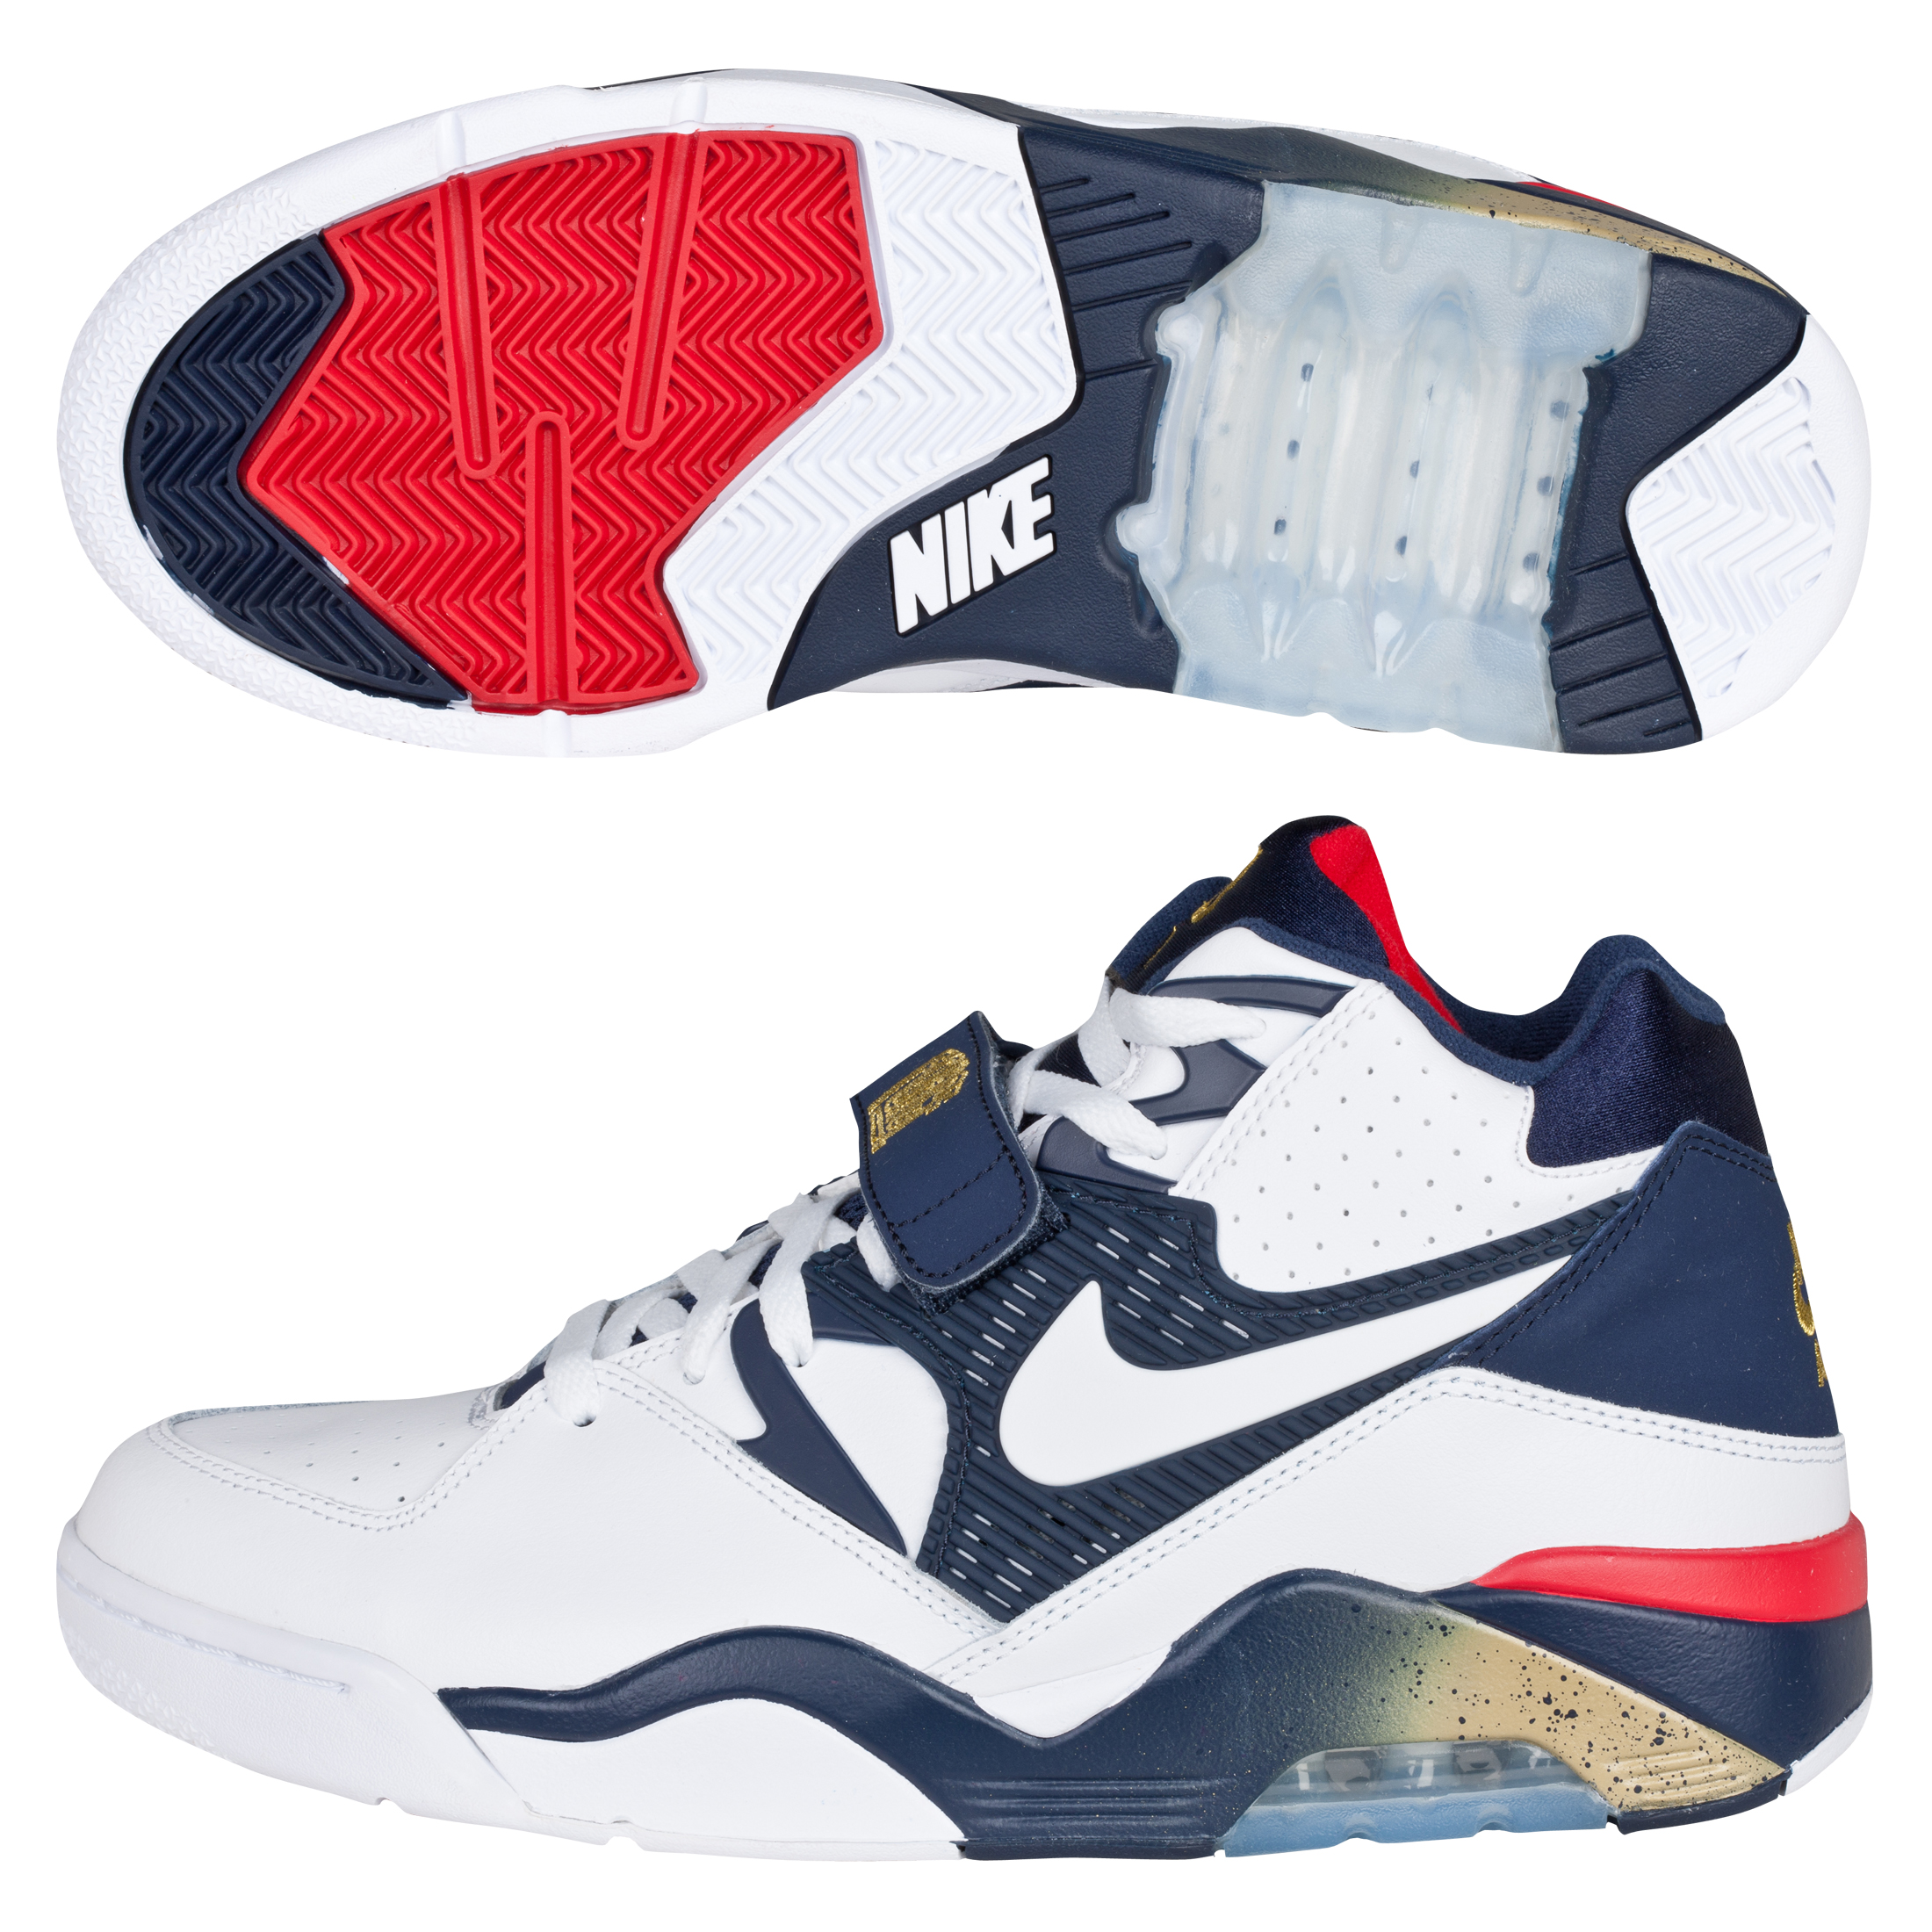 Nike Air Force 180 Trainers - White/White/Midnight Navy/Metallic Gold